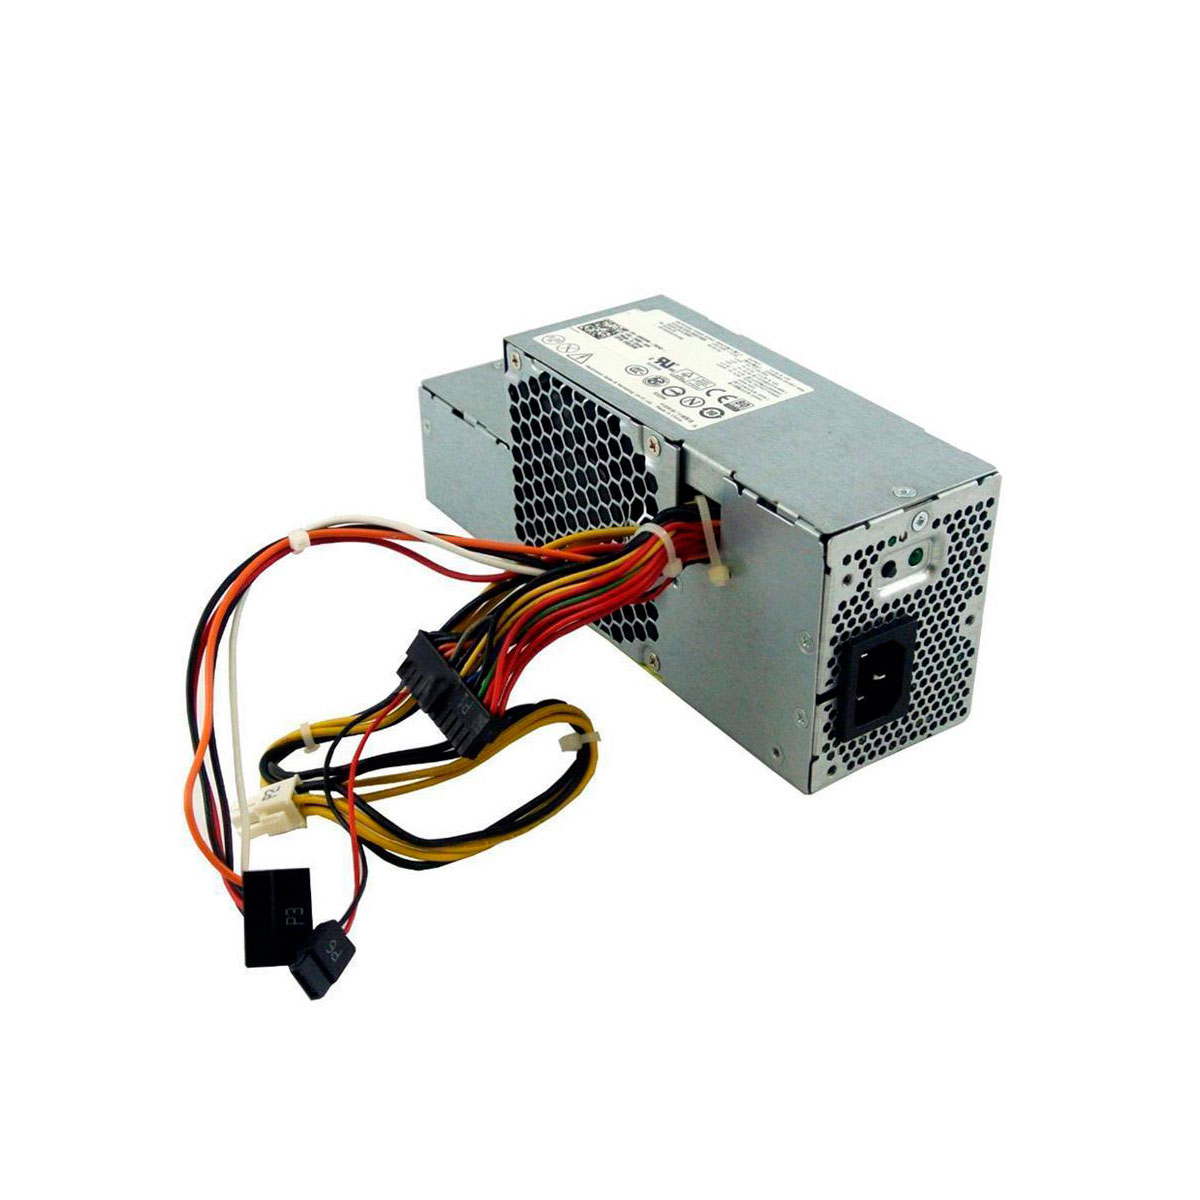 Fuente de poder Dell 200 WATTS OPTIPLEX L200EU-01